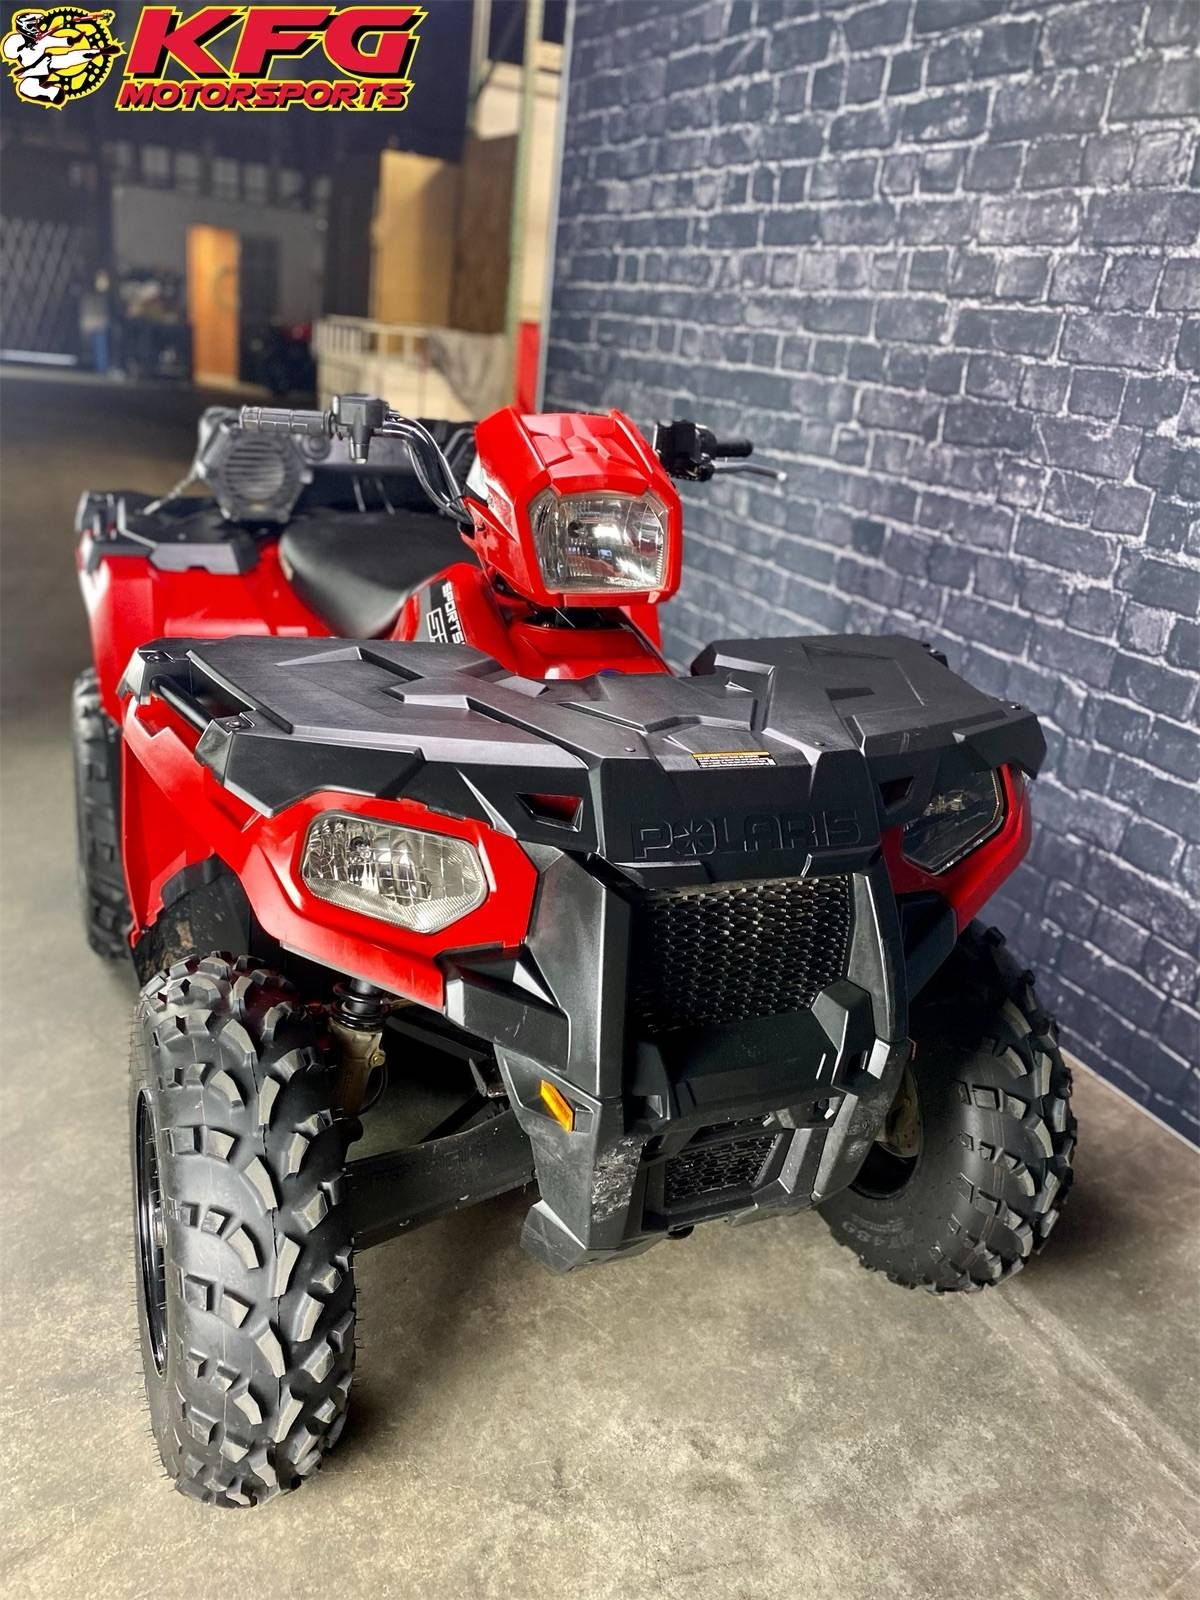 2020 Polaris Sportsman 570 in Auburn, Washington - Photo 5